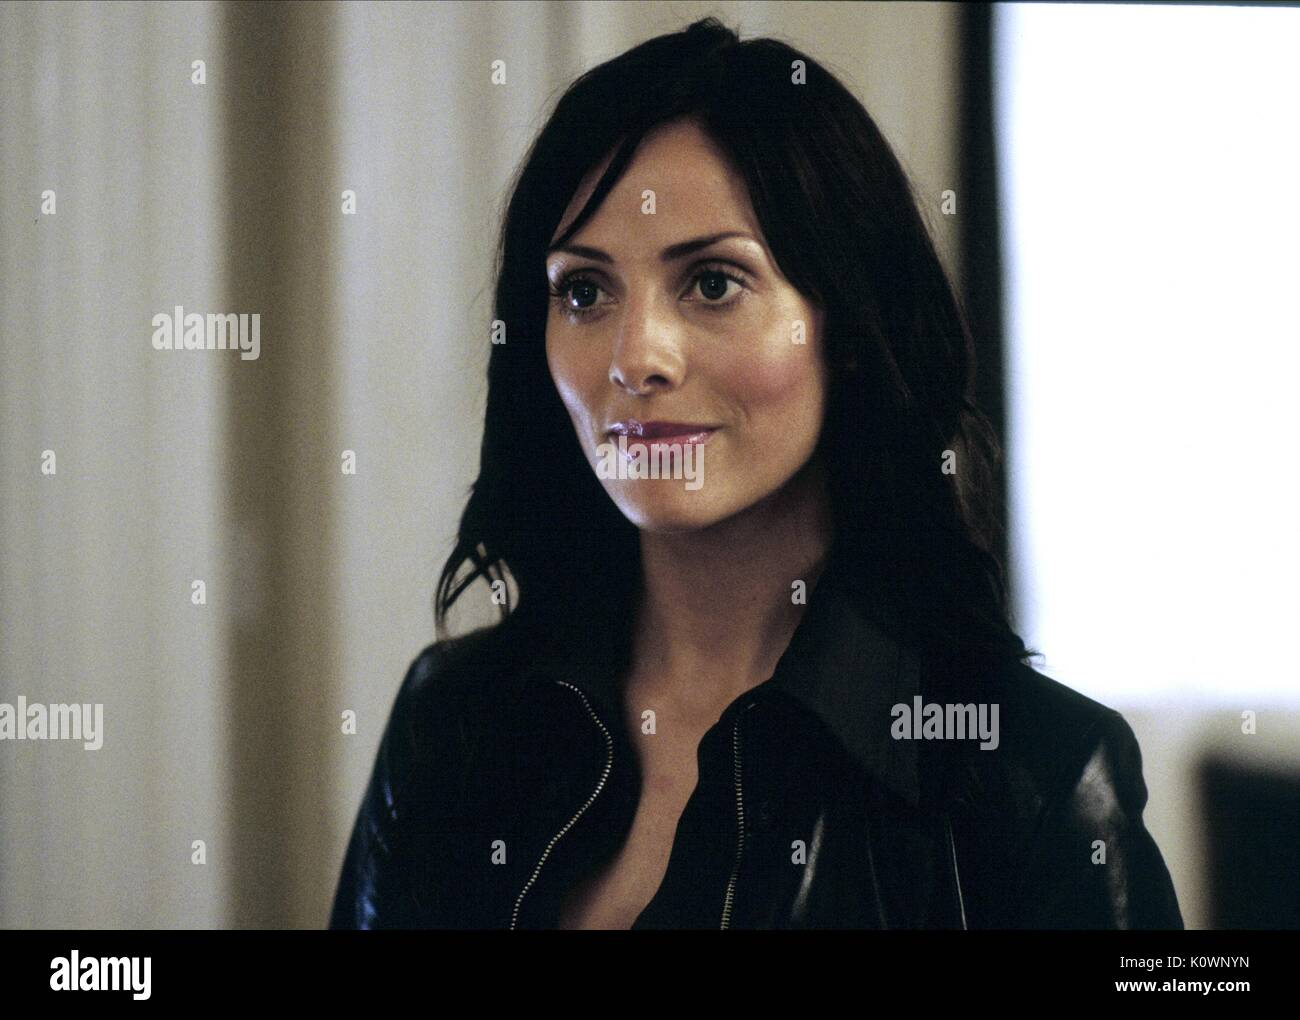 NATALIE IMBRUGLIA JOHNNY ENGLISH (2003) - Stock Image